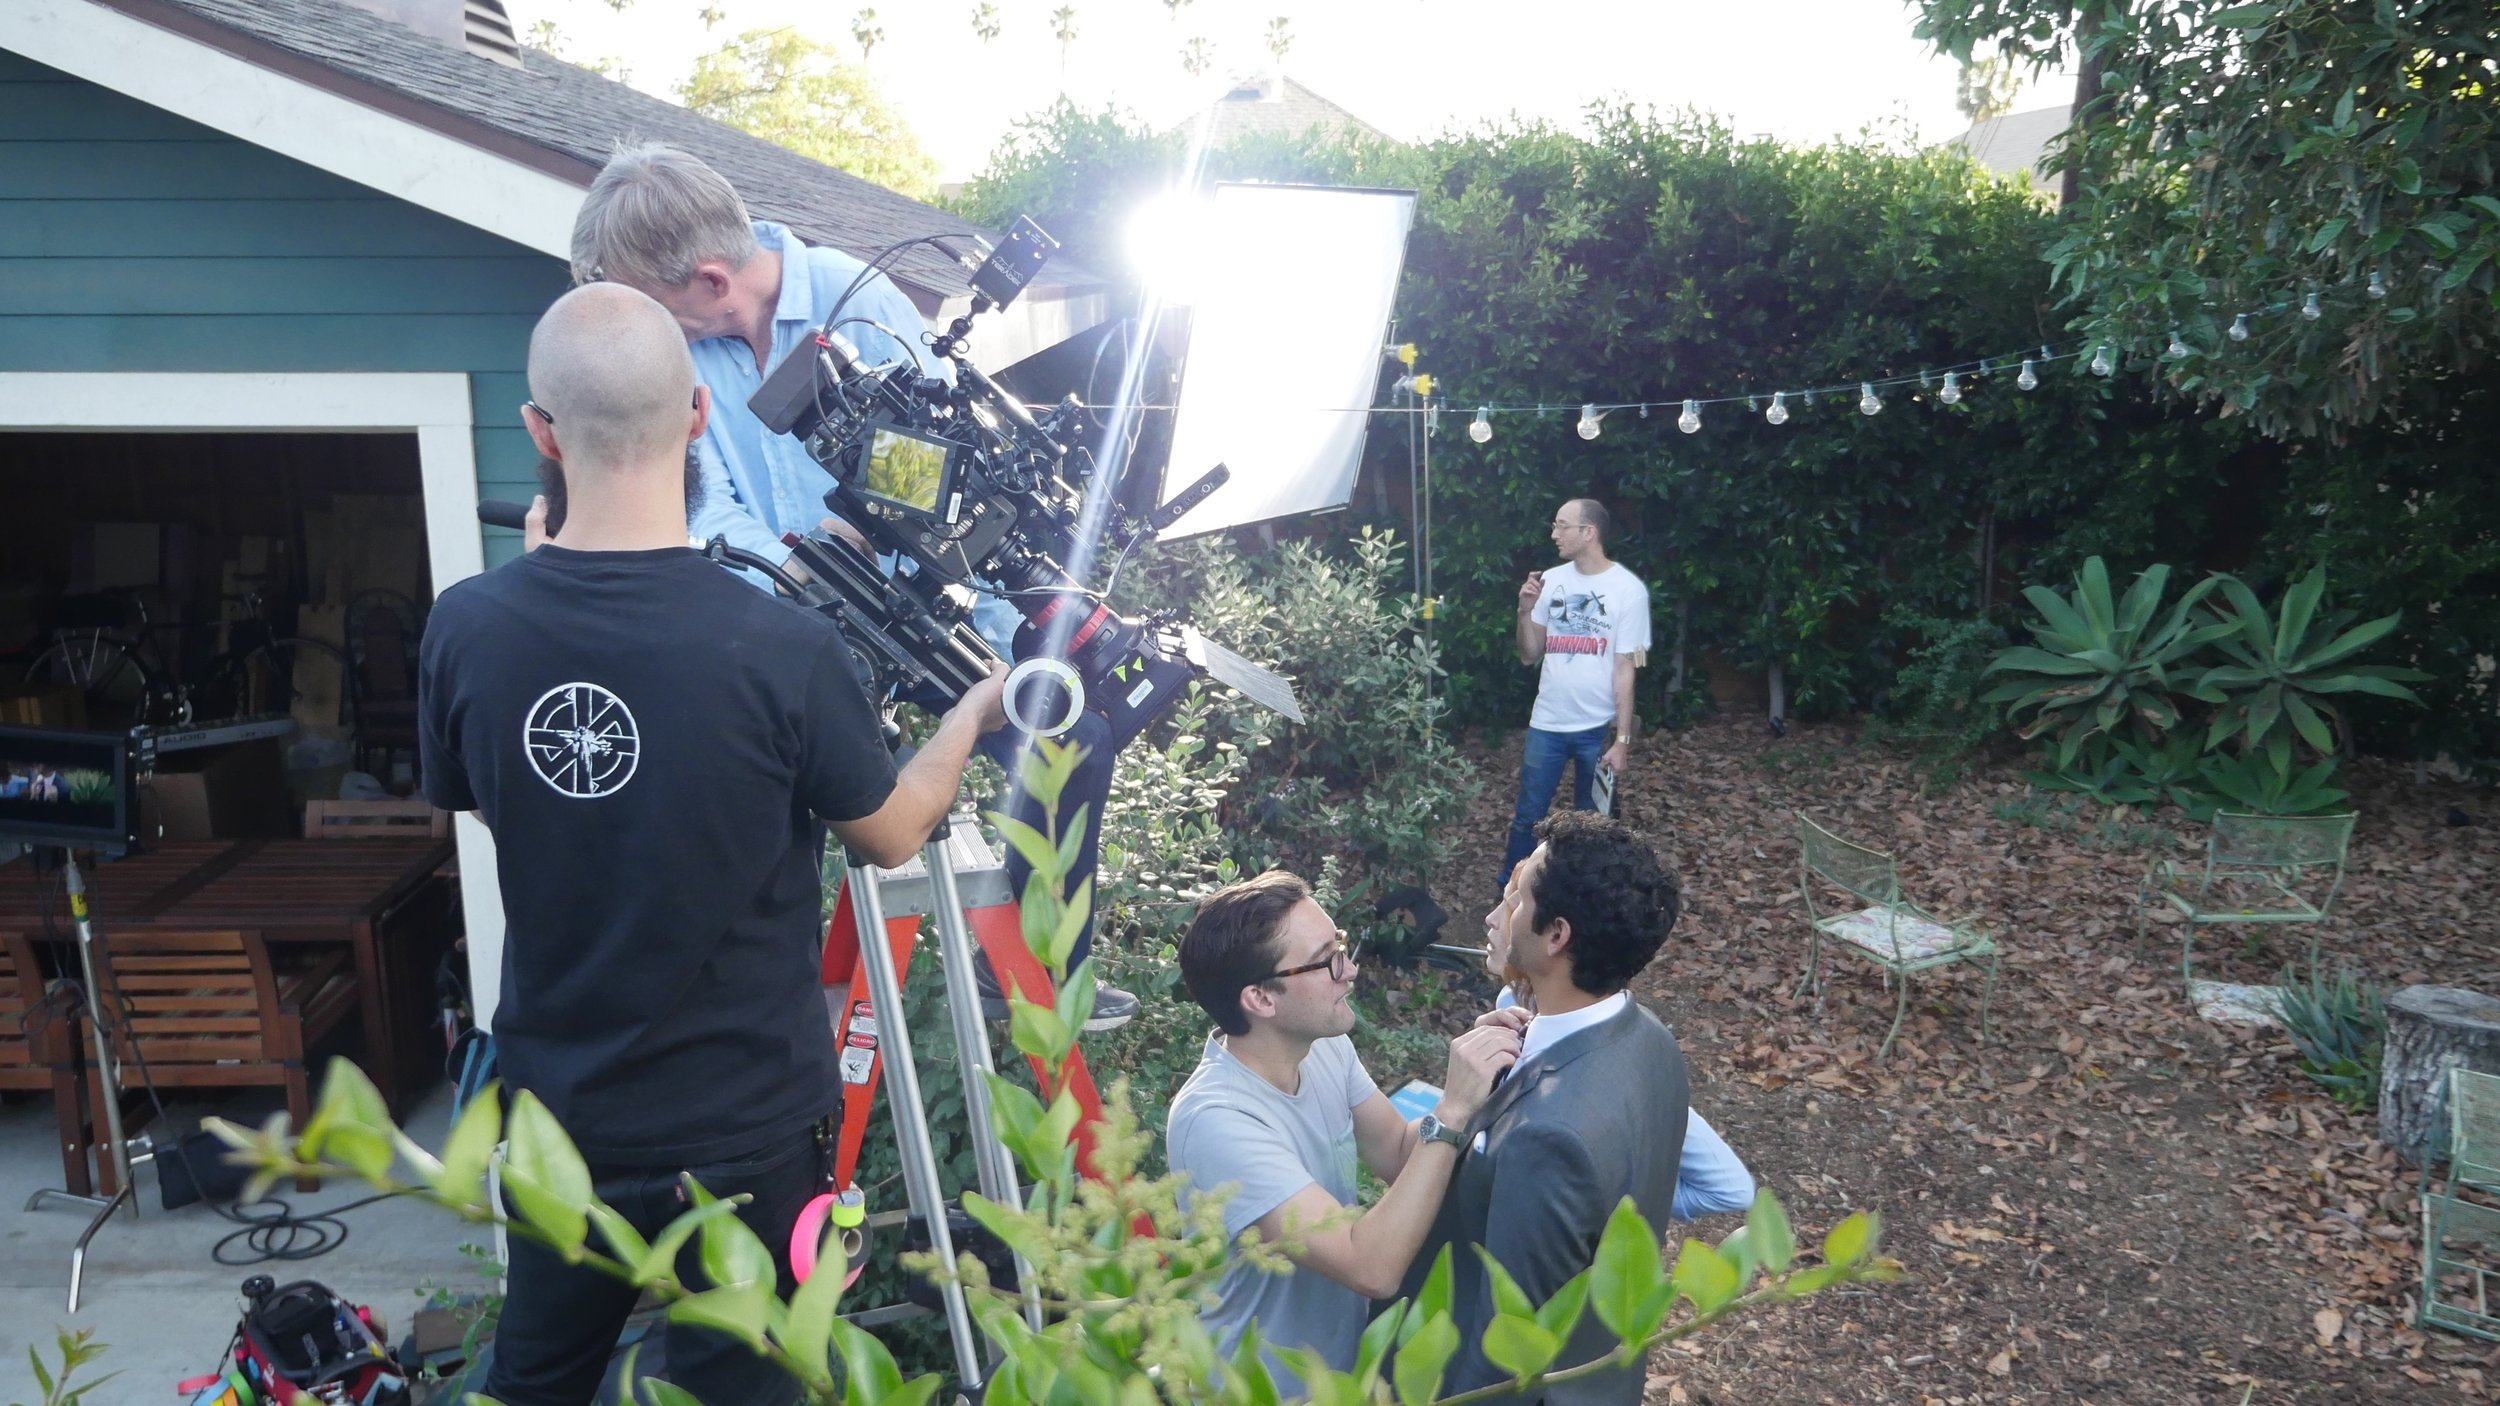 Gareth adjusts Avi's tie while Philip and the crew get ready to roll camera.